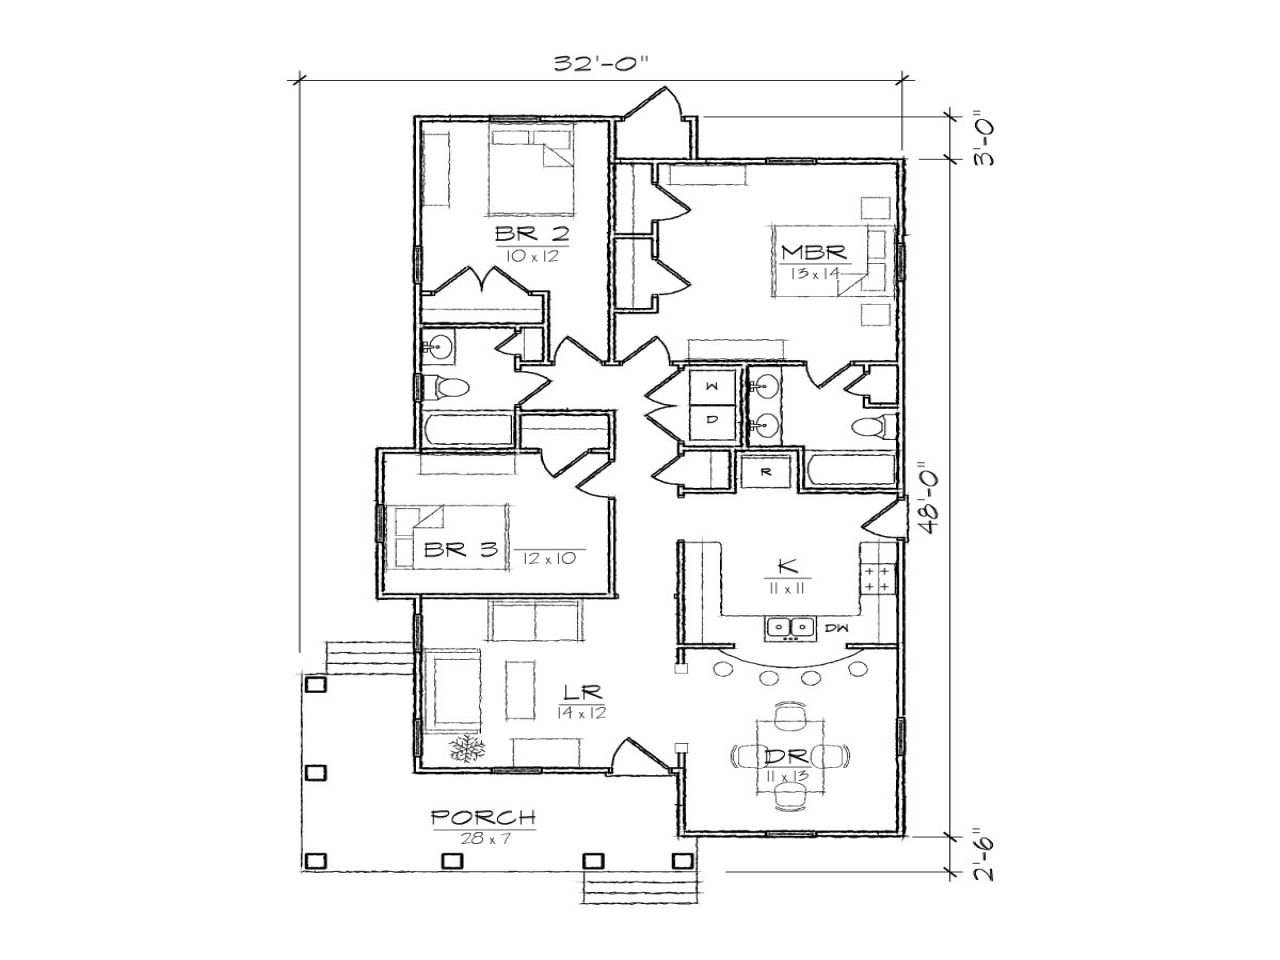 Bungalow house floor plans two story house floor plans for Bungalow house plans alberta